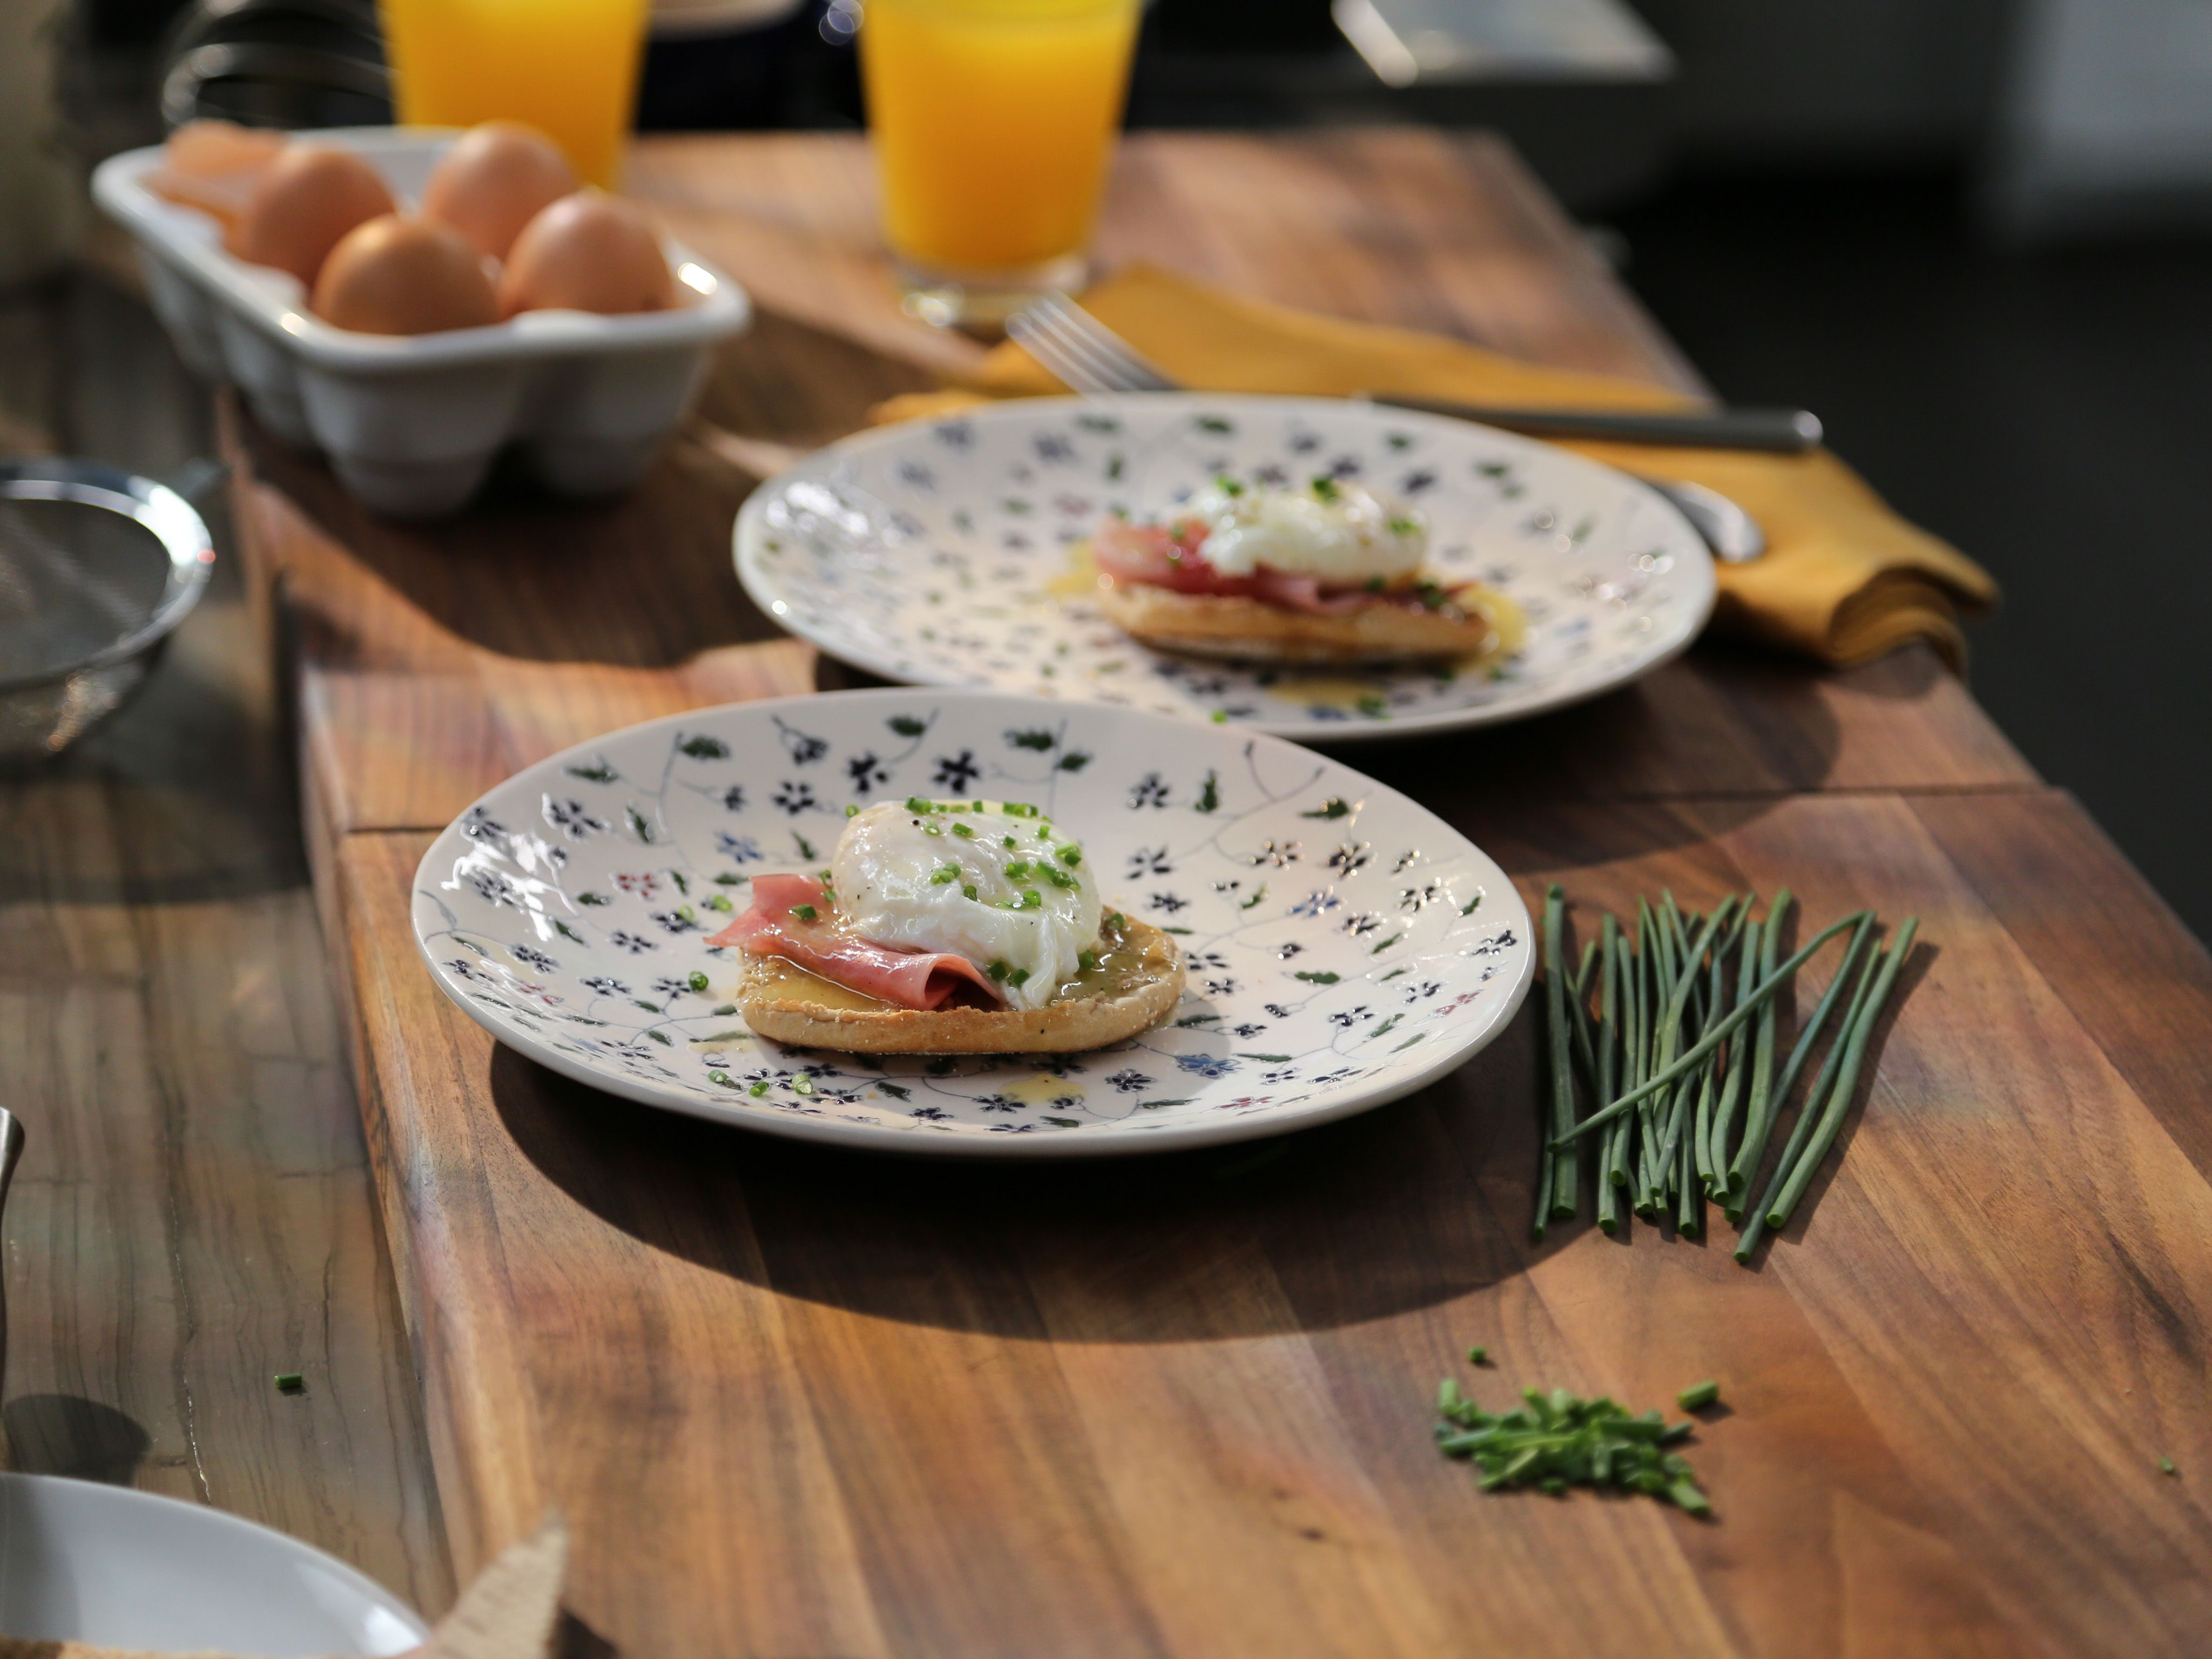 Eggs benedict rx recipe from valerie bertinelli via food network eggs benedict rx recipe from valerie bertinelli via food network breakfast pinterest valerie bertinelli egg benedict and egg forumfinder Gallery